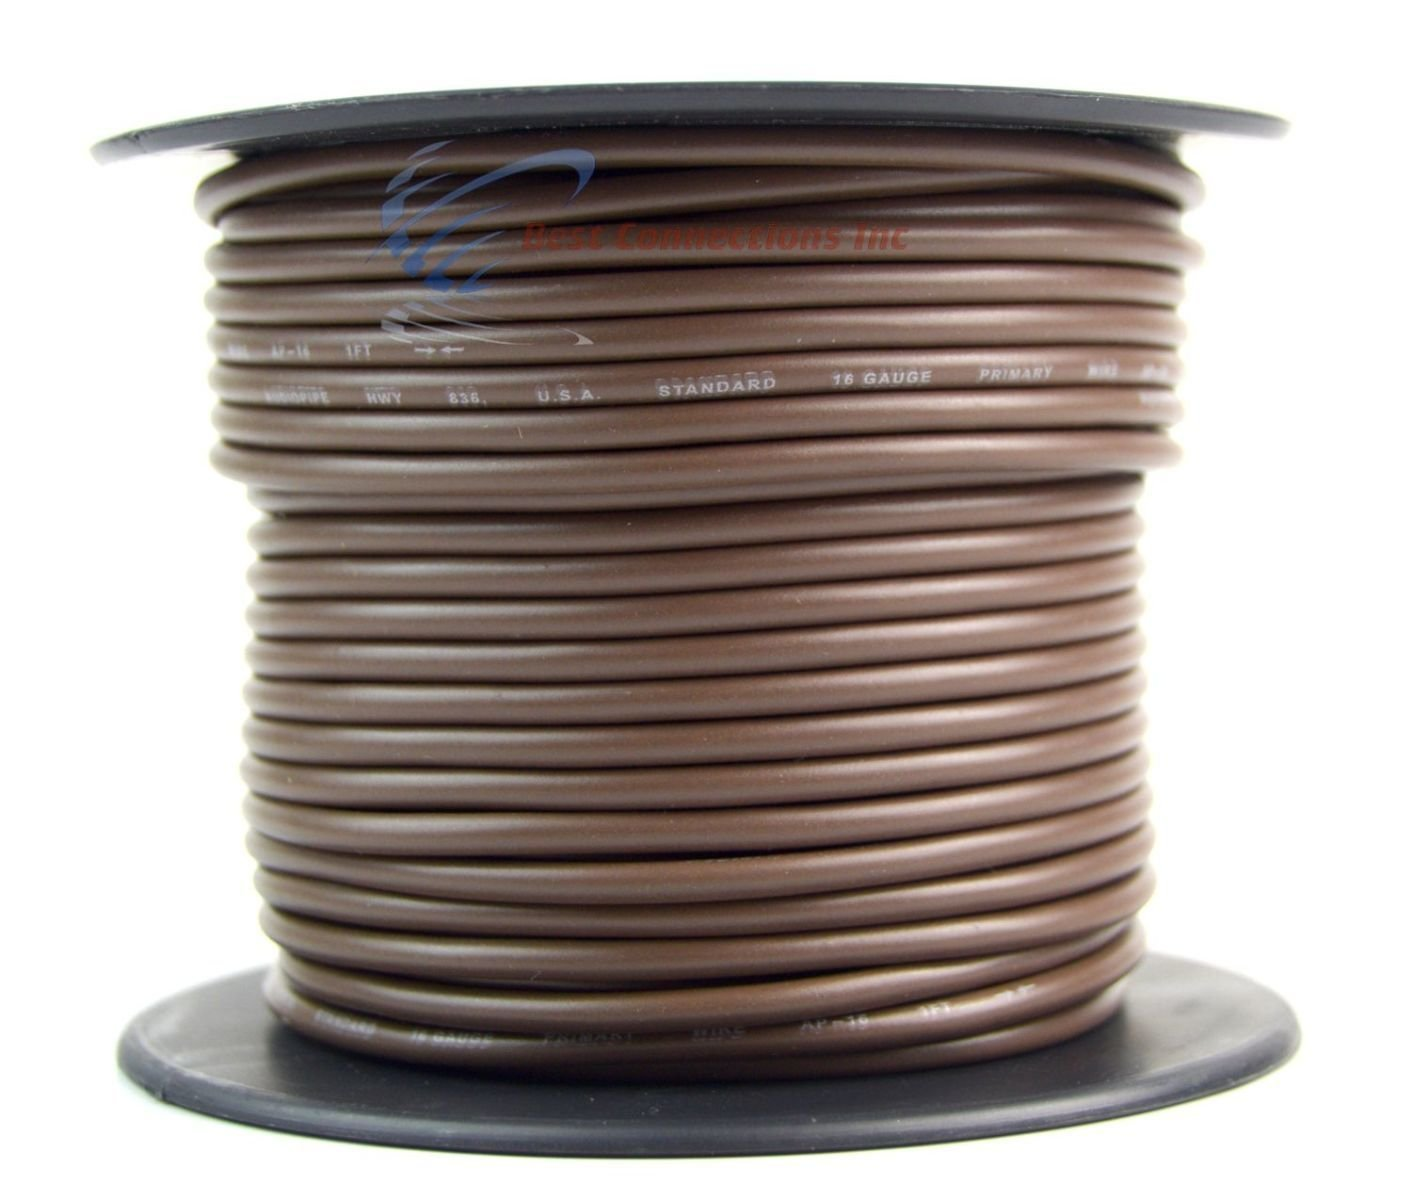 Trailer Wire Light Cable For Harness 7 Way Cord 16 Gauge Electrical Wirepvc Coated Electric Copper Wire7 Stranded 100ft Roll Rolls Automotive